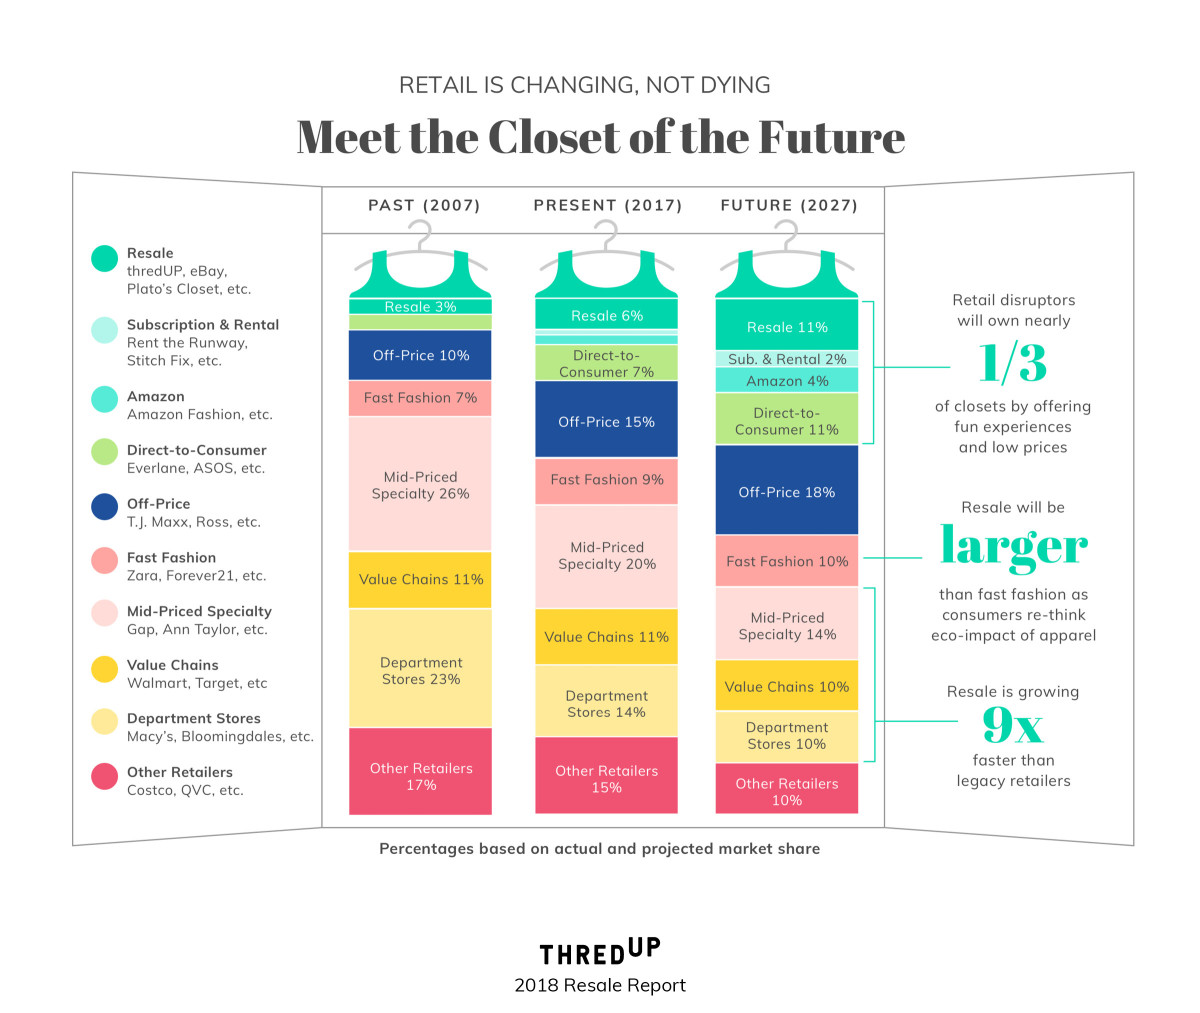 Resale Is Expected to Be Bigger Than Fast Fashion Within 10 Years